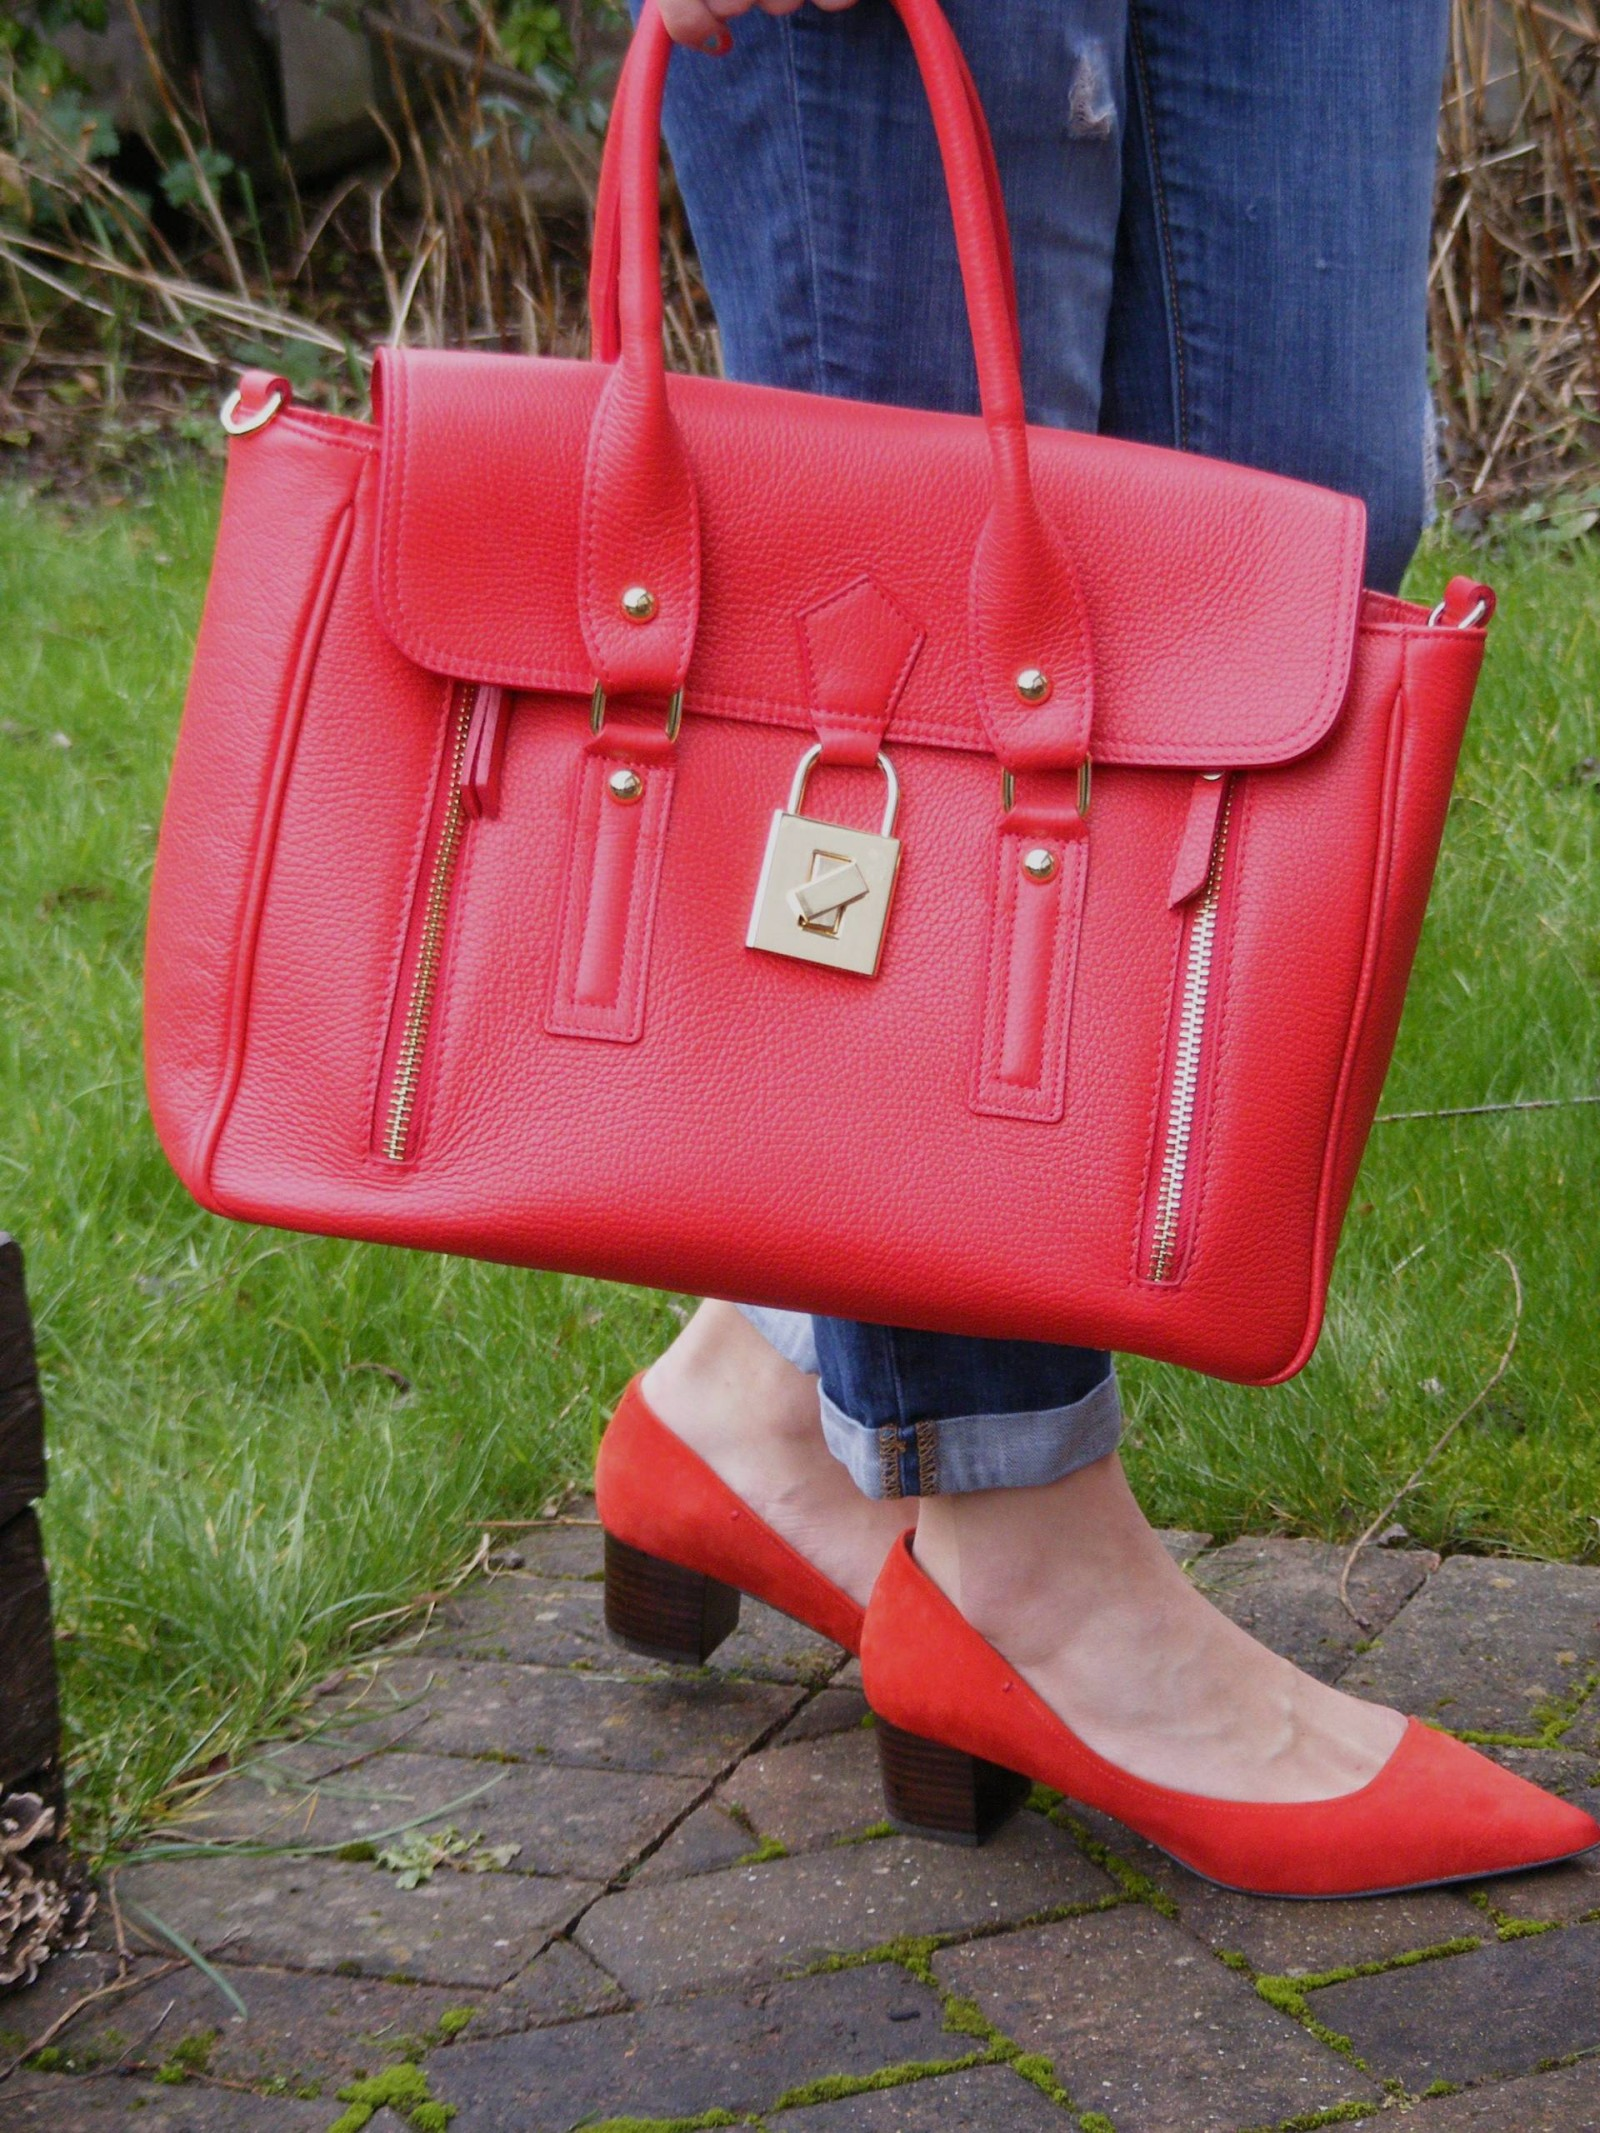 Mila Blu red leather handbag